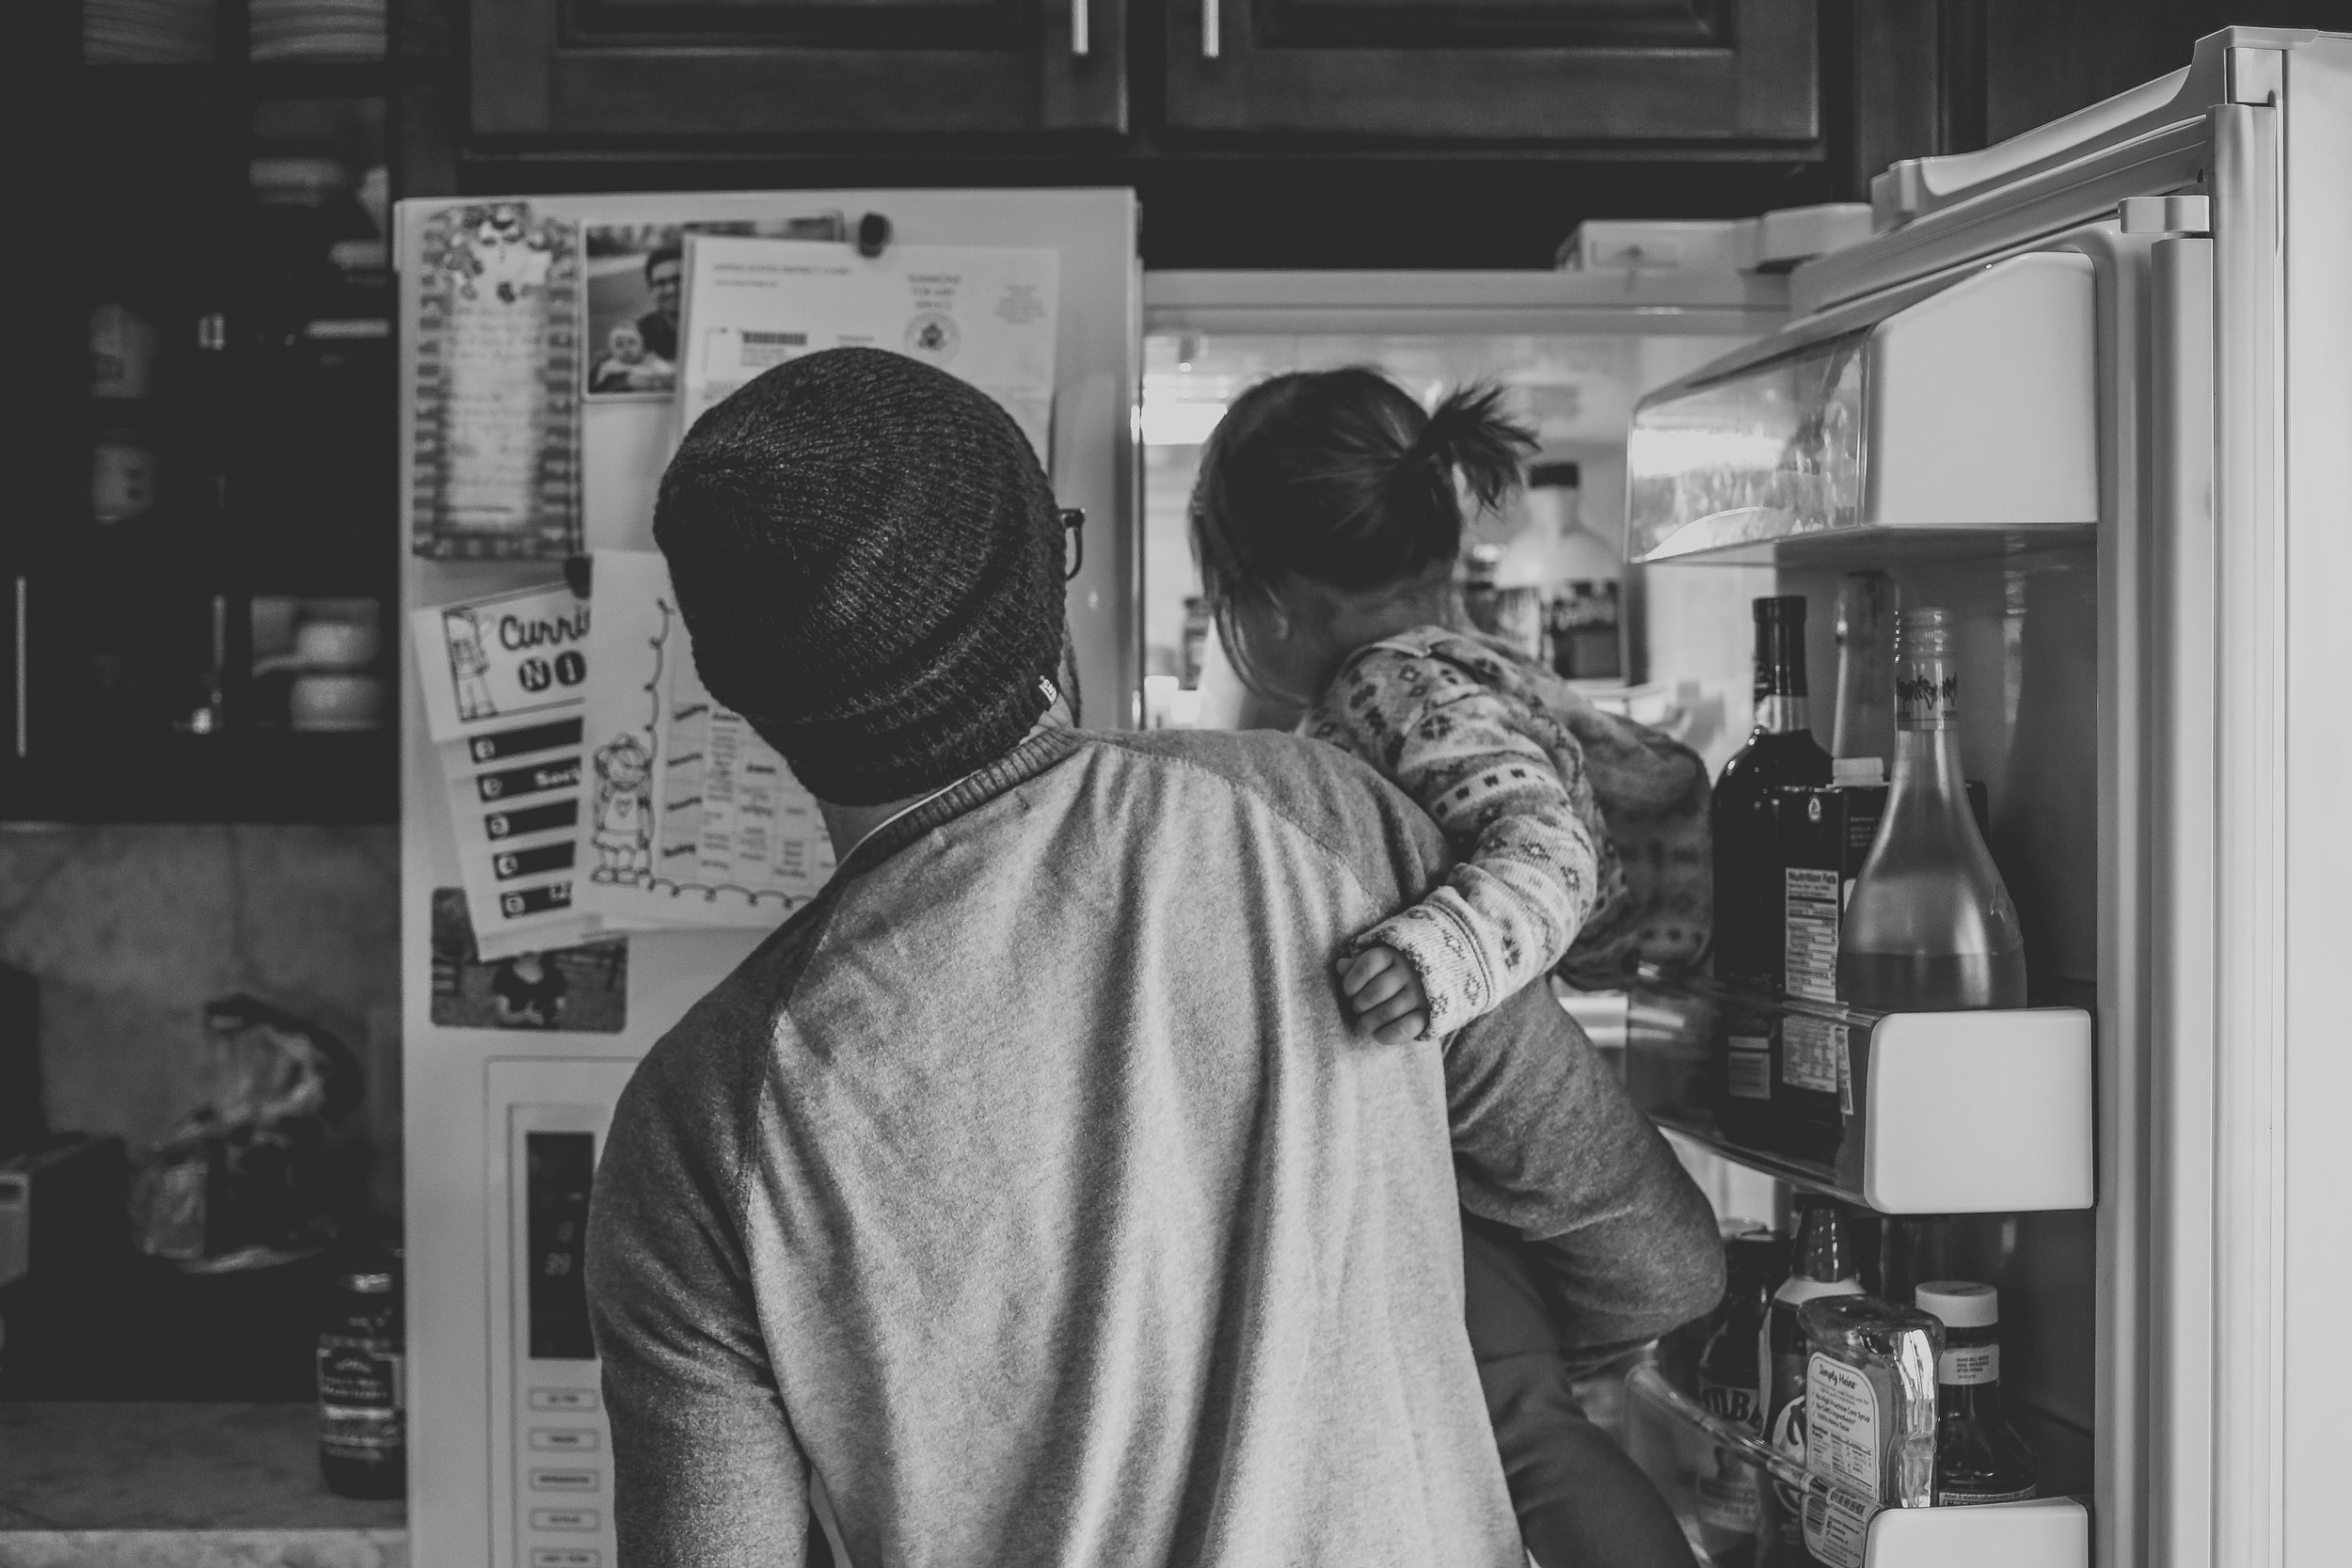 Little girl with dad checking the refrigerator for a snack during an unposed family photography session, Lehigh Valley, PA.